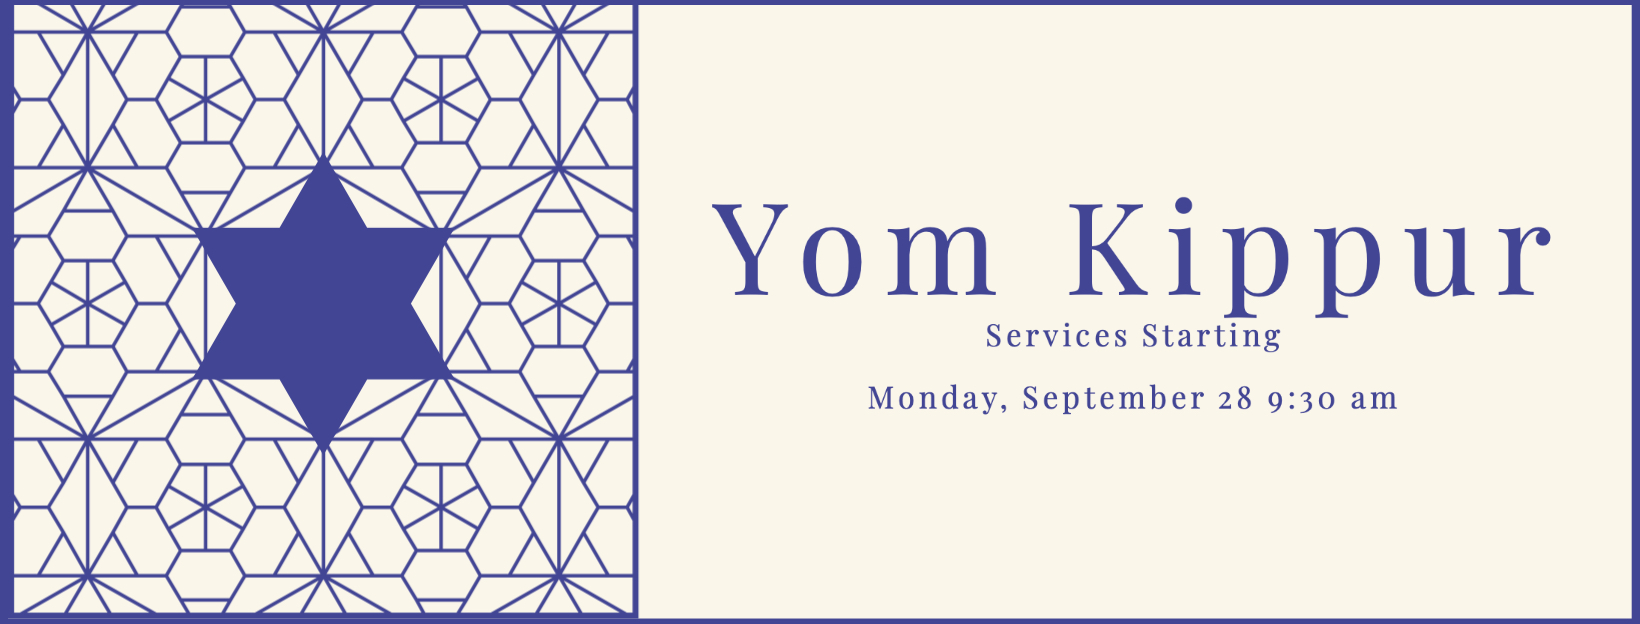 Yom Kippur Services Starting at 9:30 am, Monday September 28th, 2020